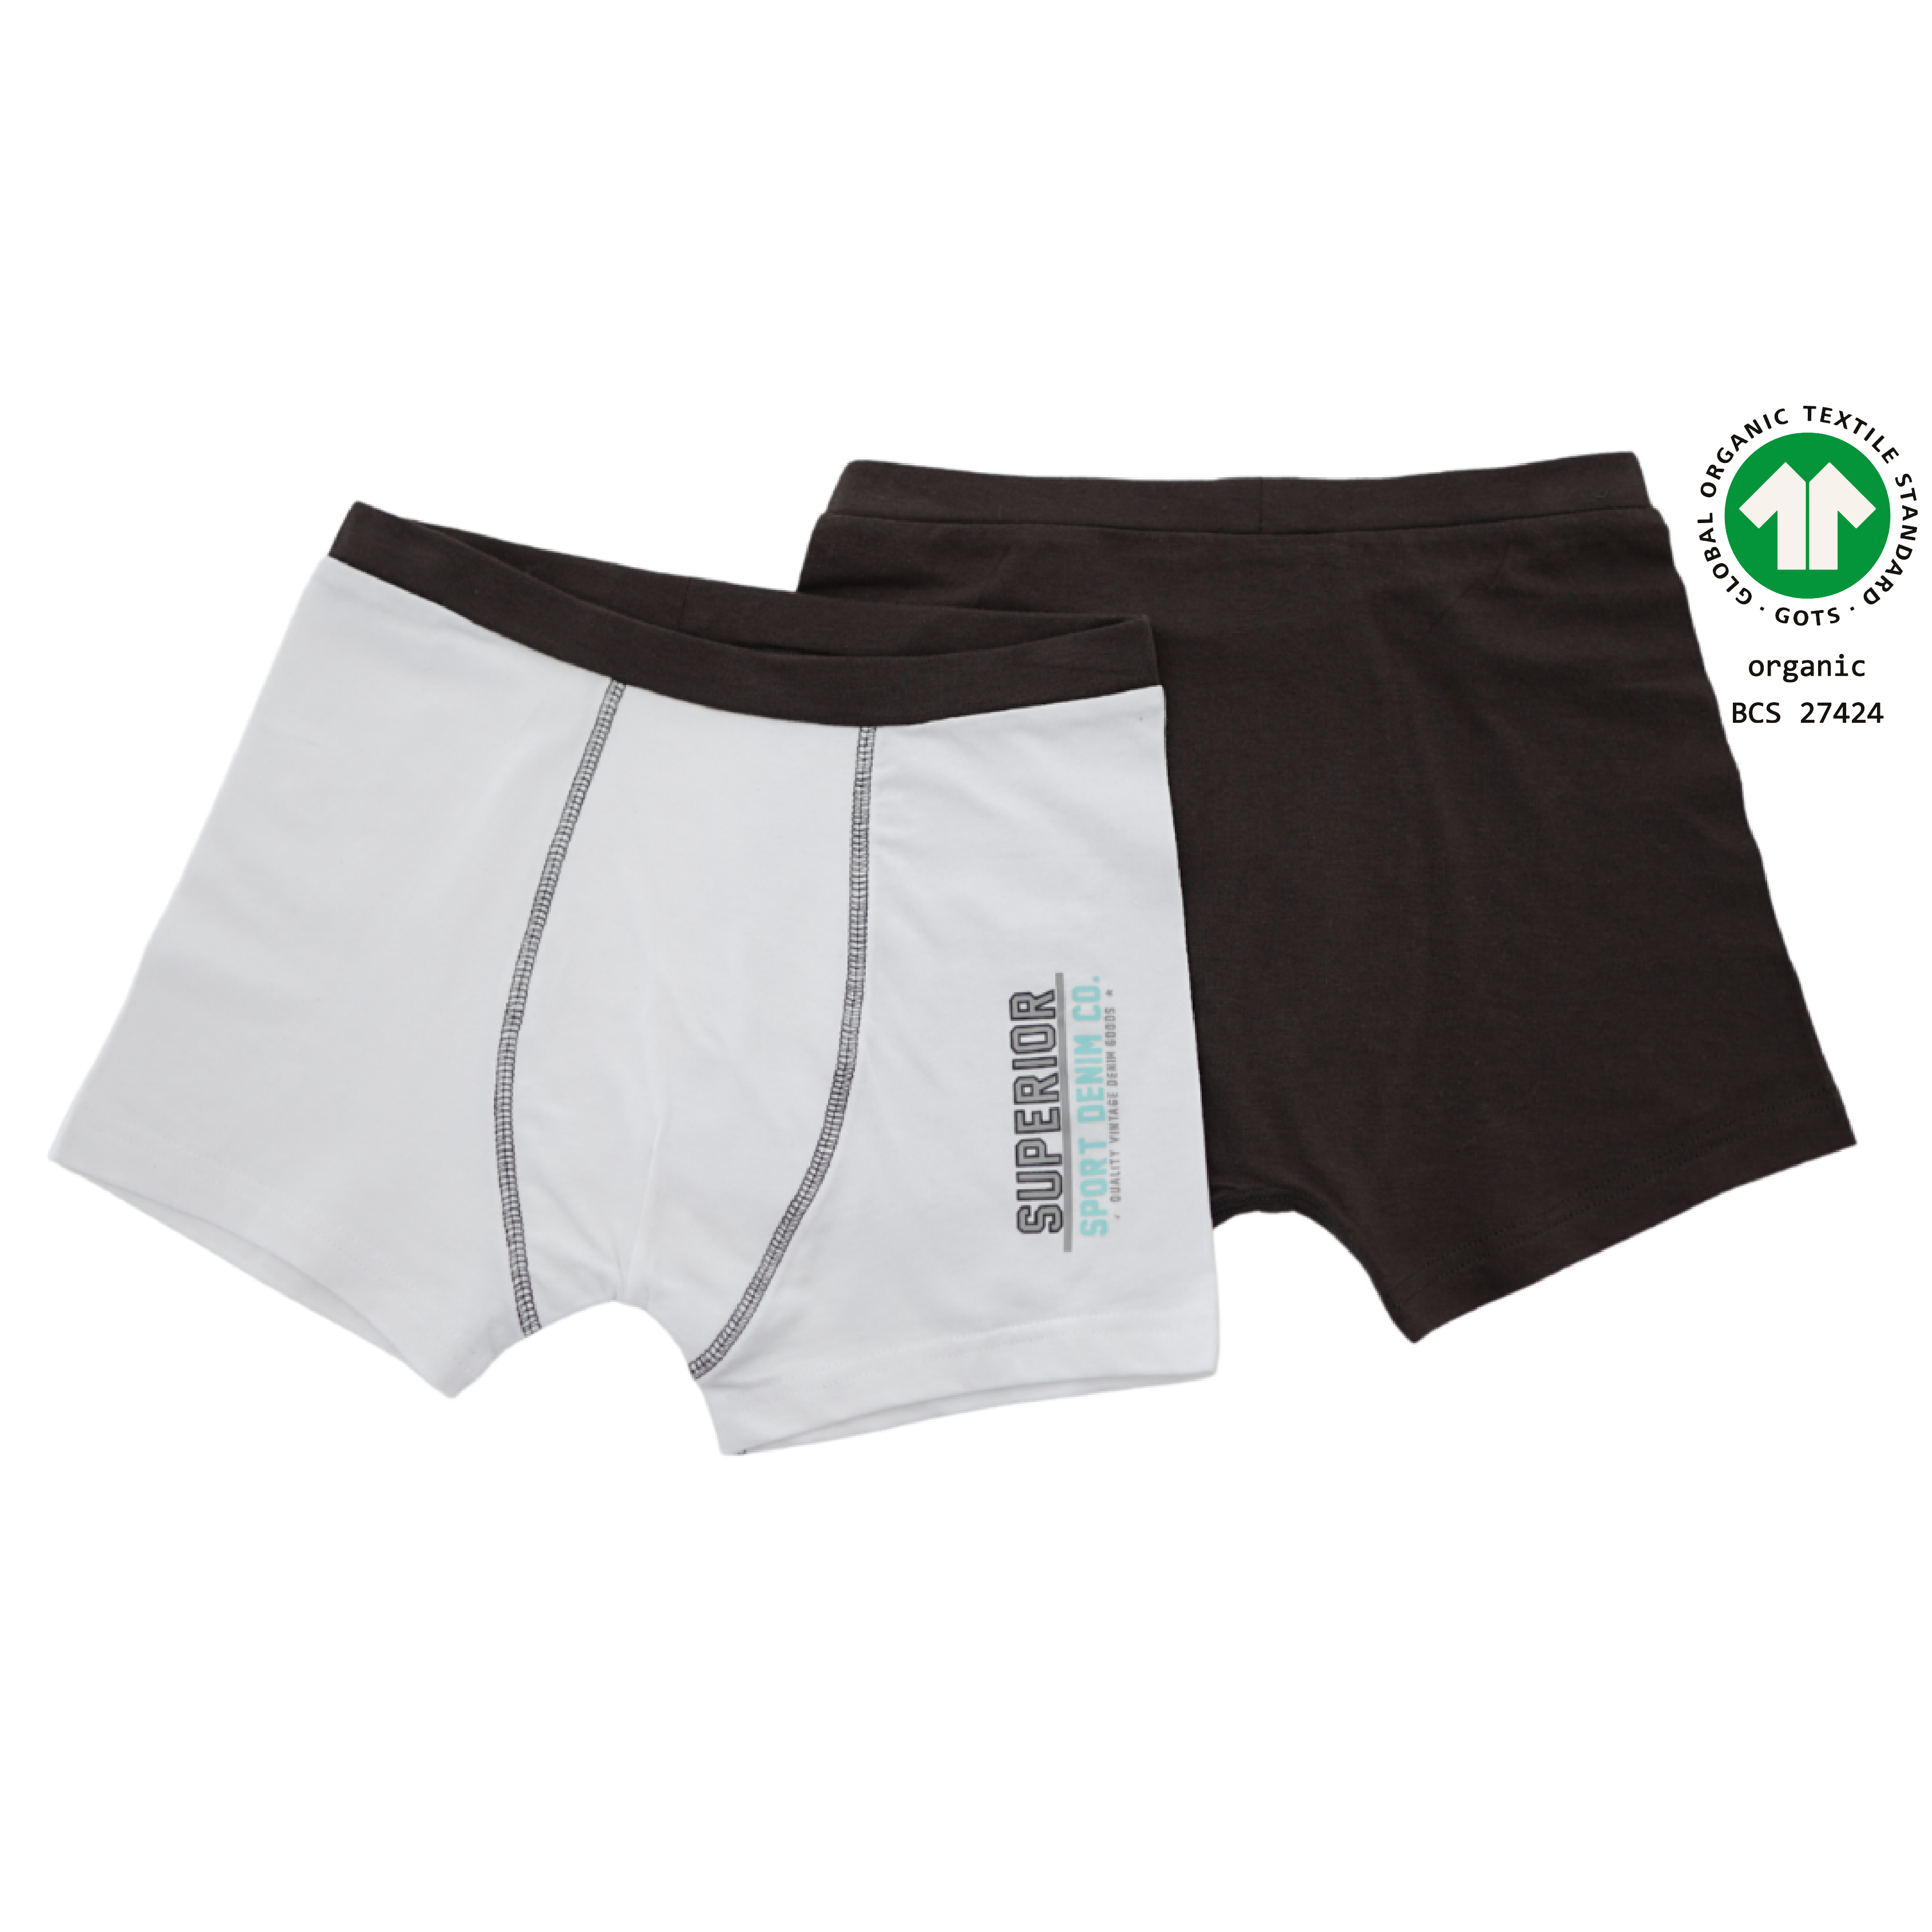 North Dept. Boy Retroshort - 2er Pack Bio Baumwolle